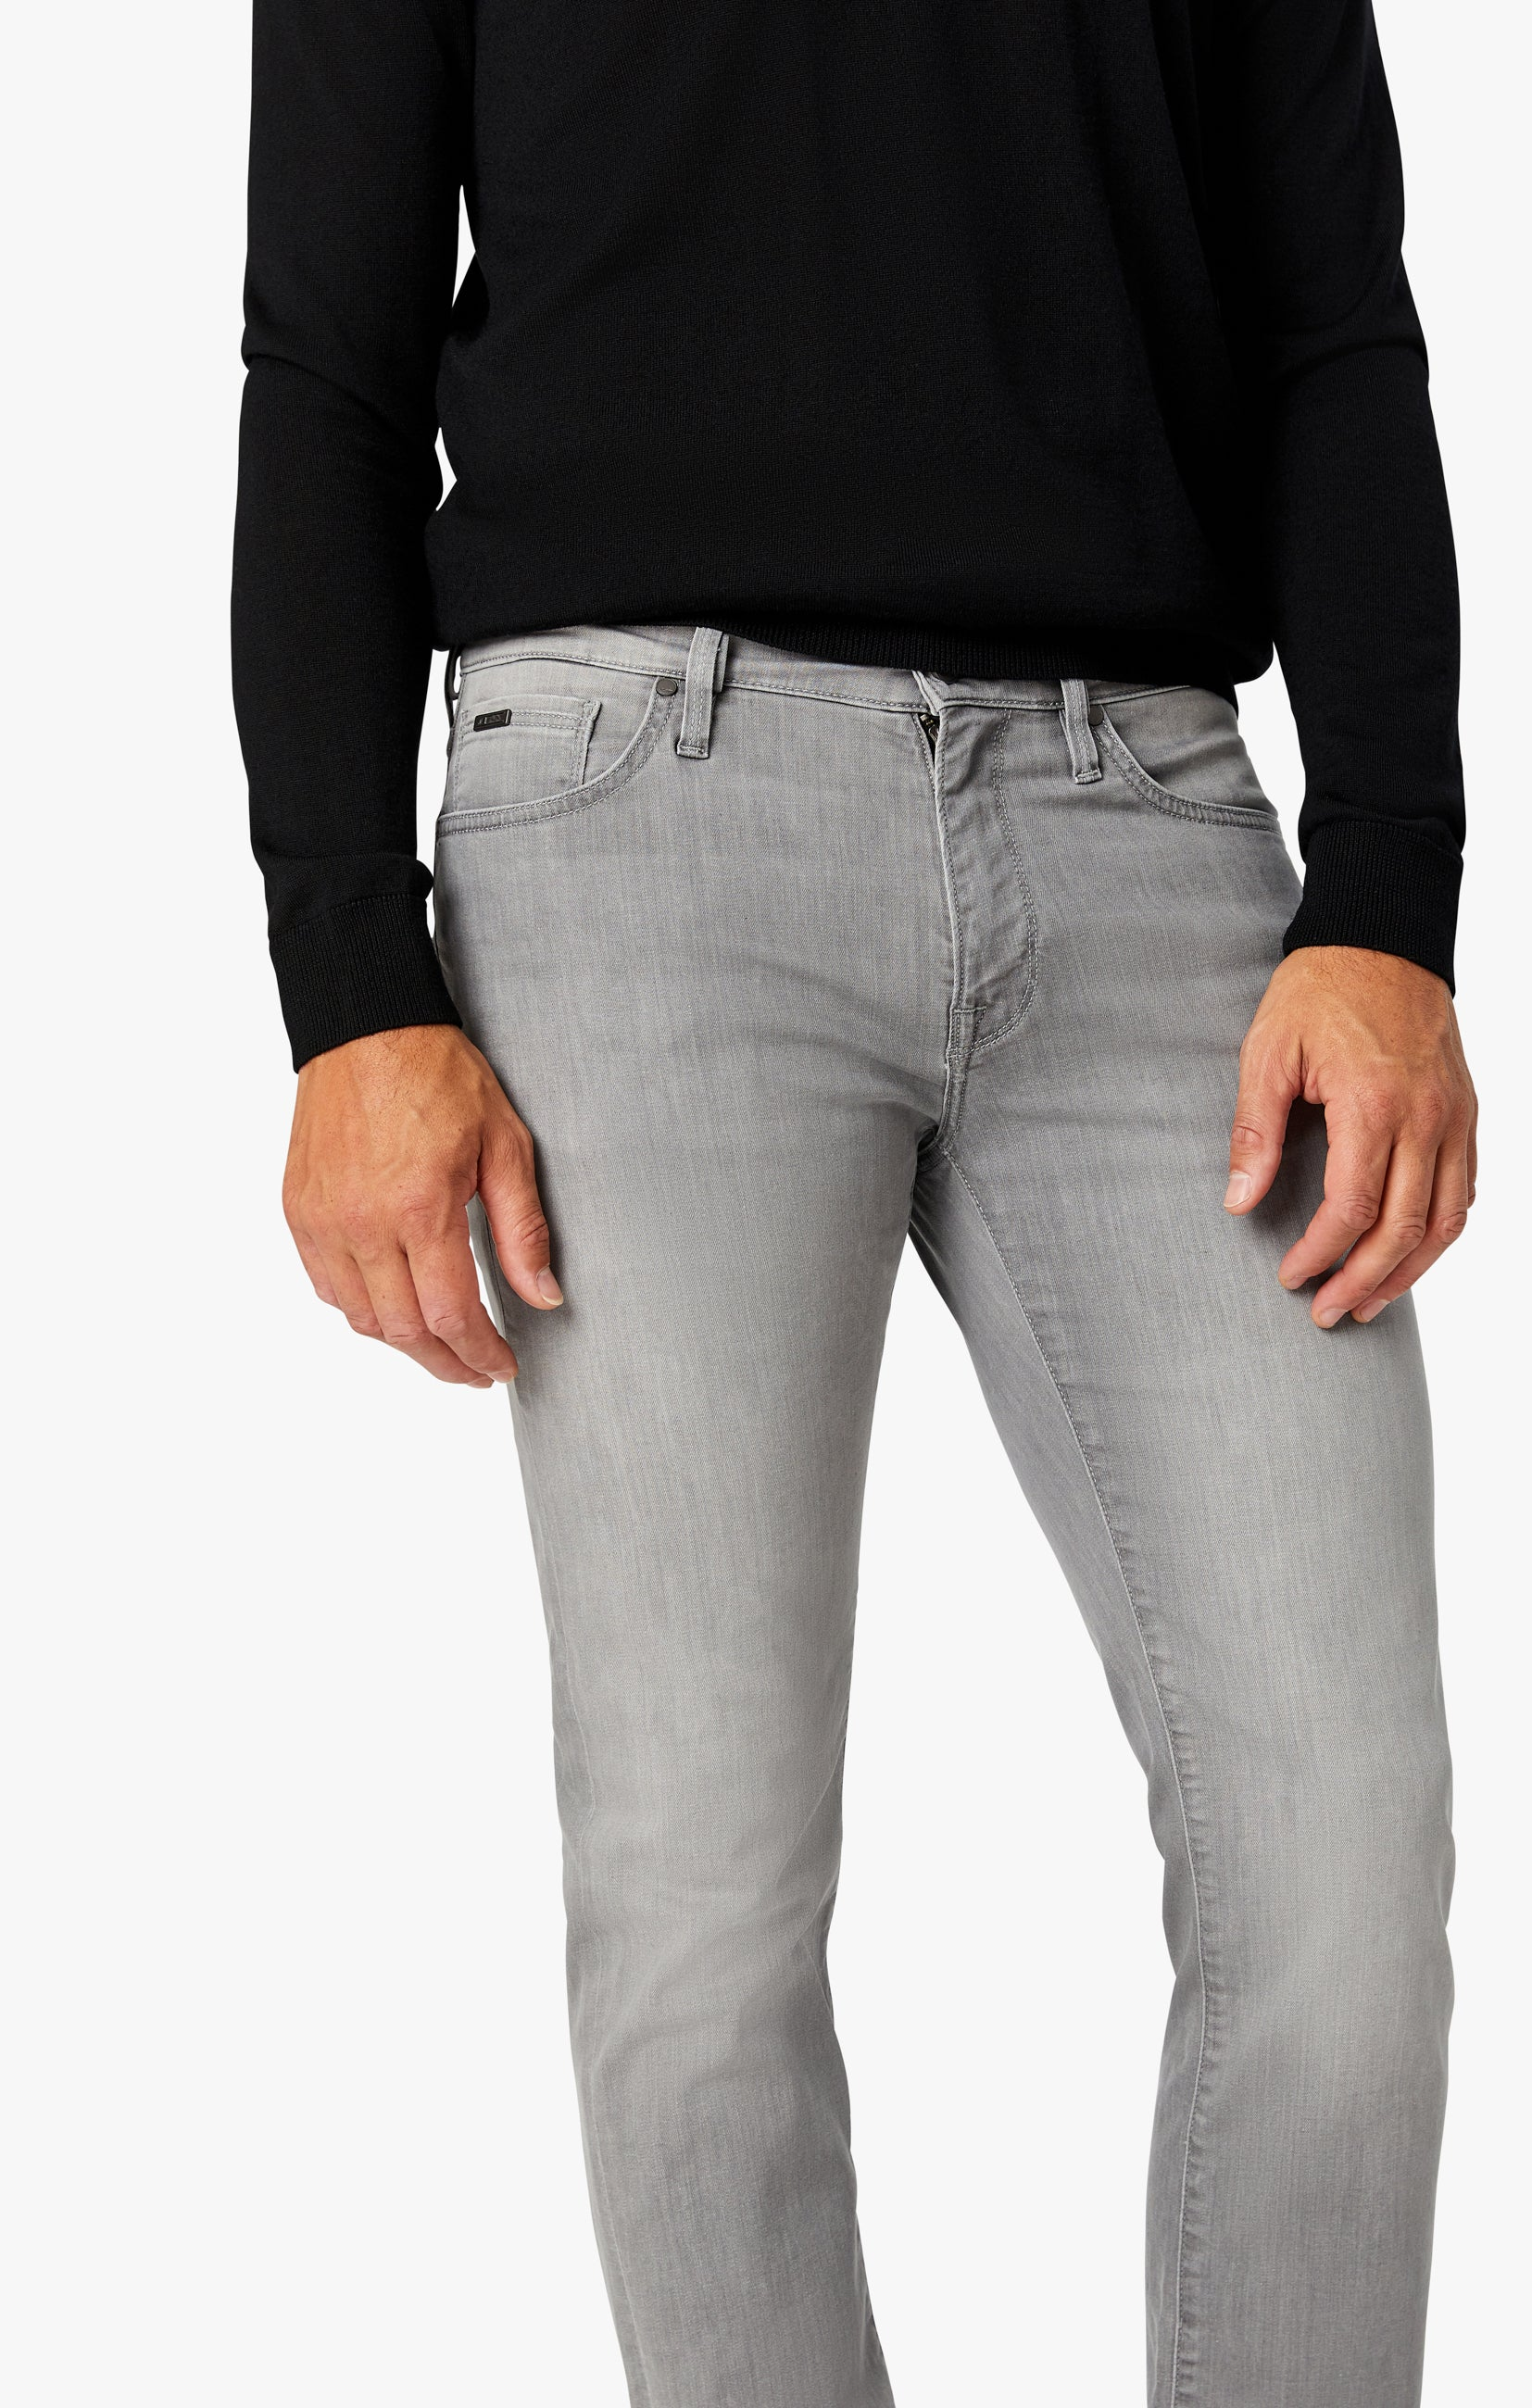 Courage Straight Leg Jeans in Grey Heritage Image 6